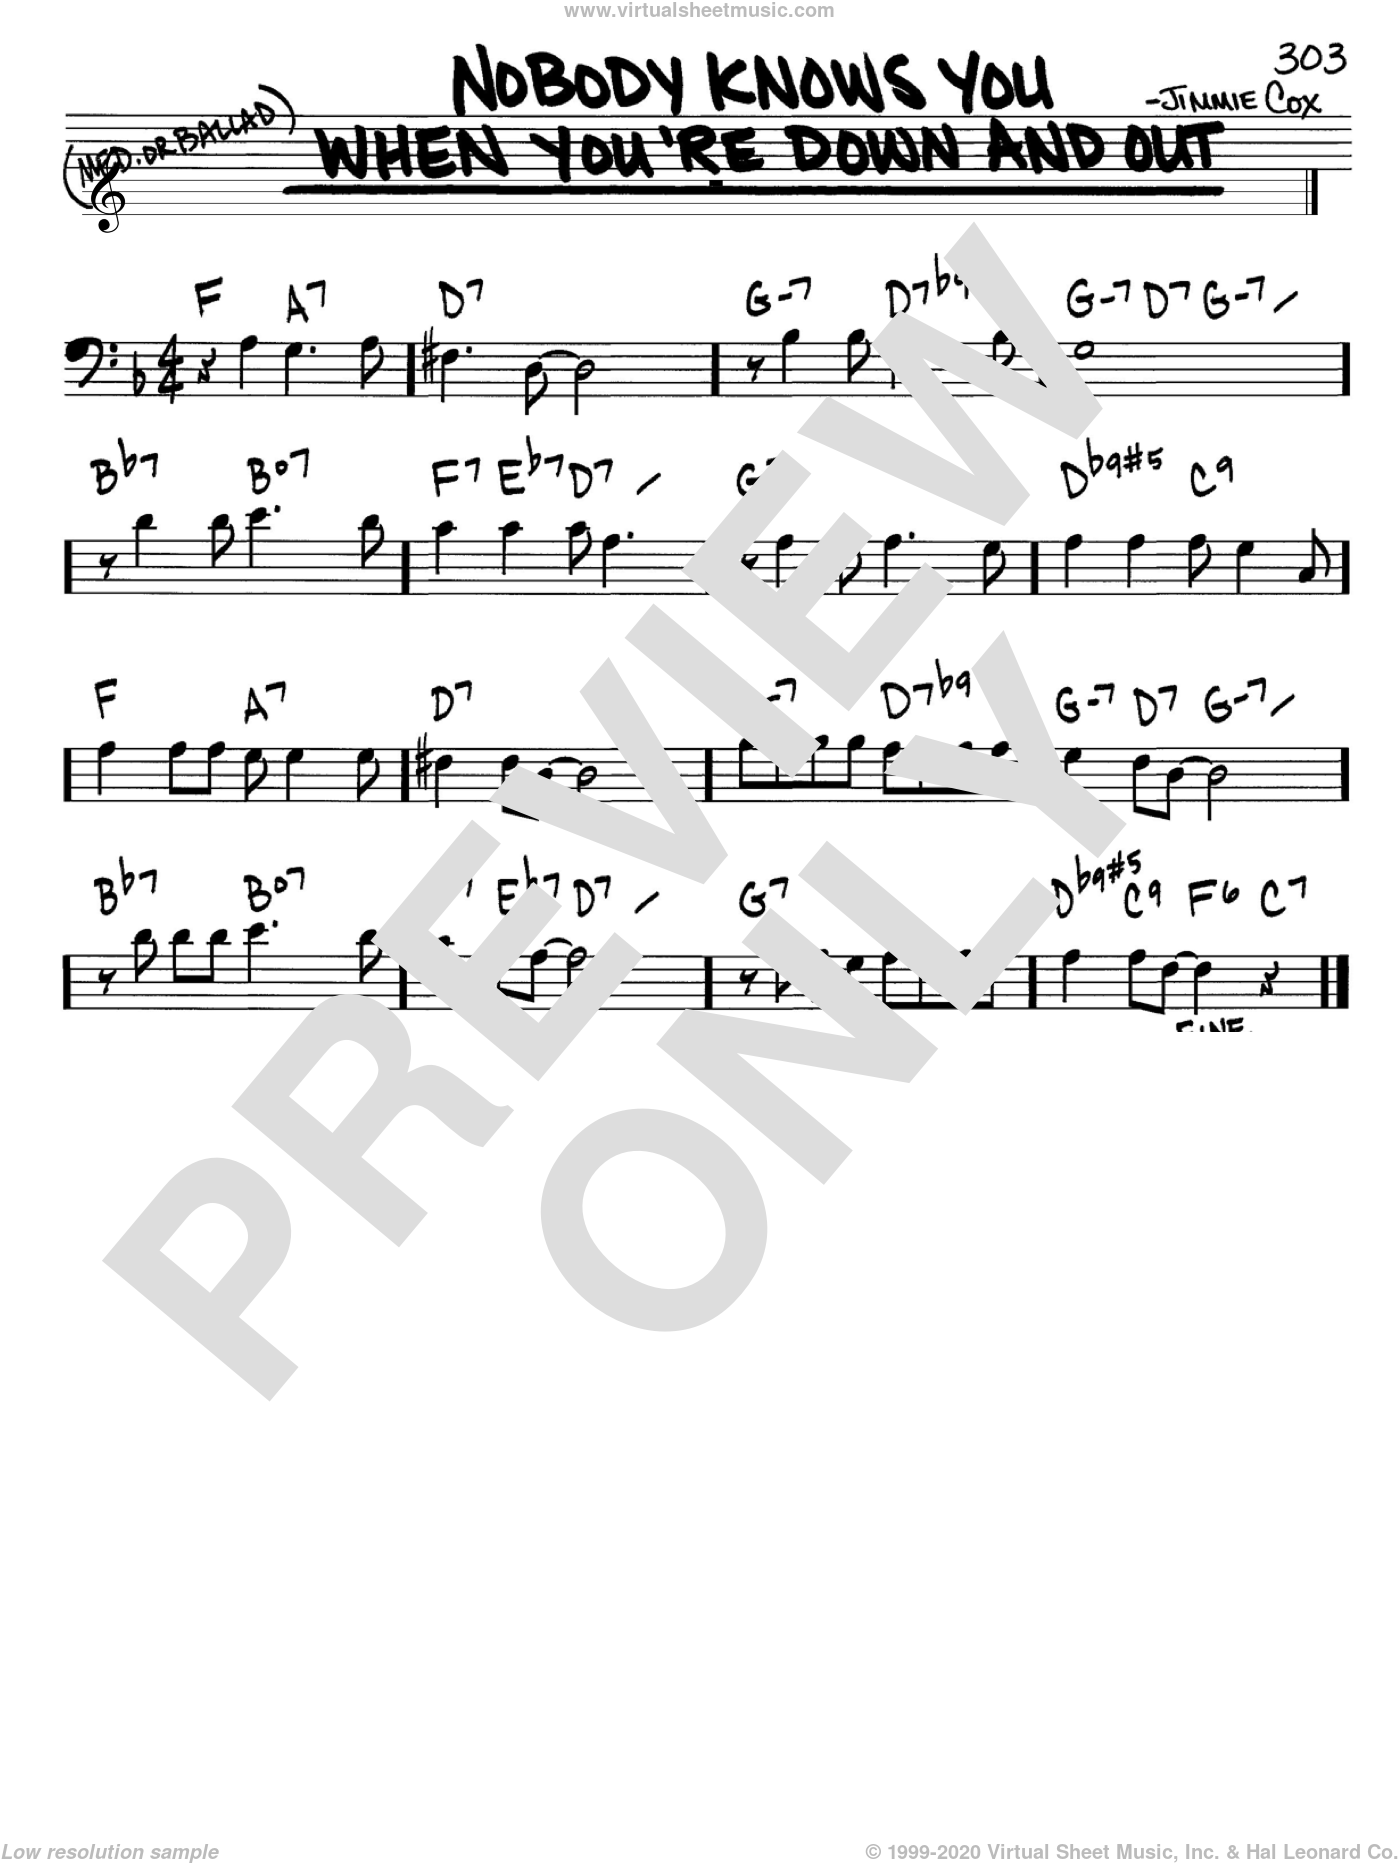 Nobody Knows You When You're Down And Out sheet music for voice and other instruments (bass clef) by Jimmie Cox, intermediate skill level